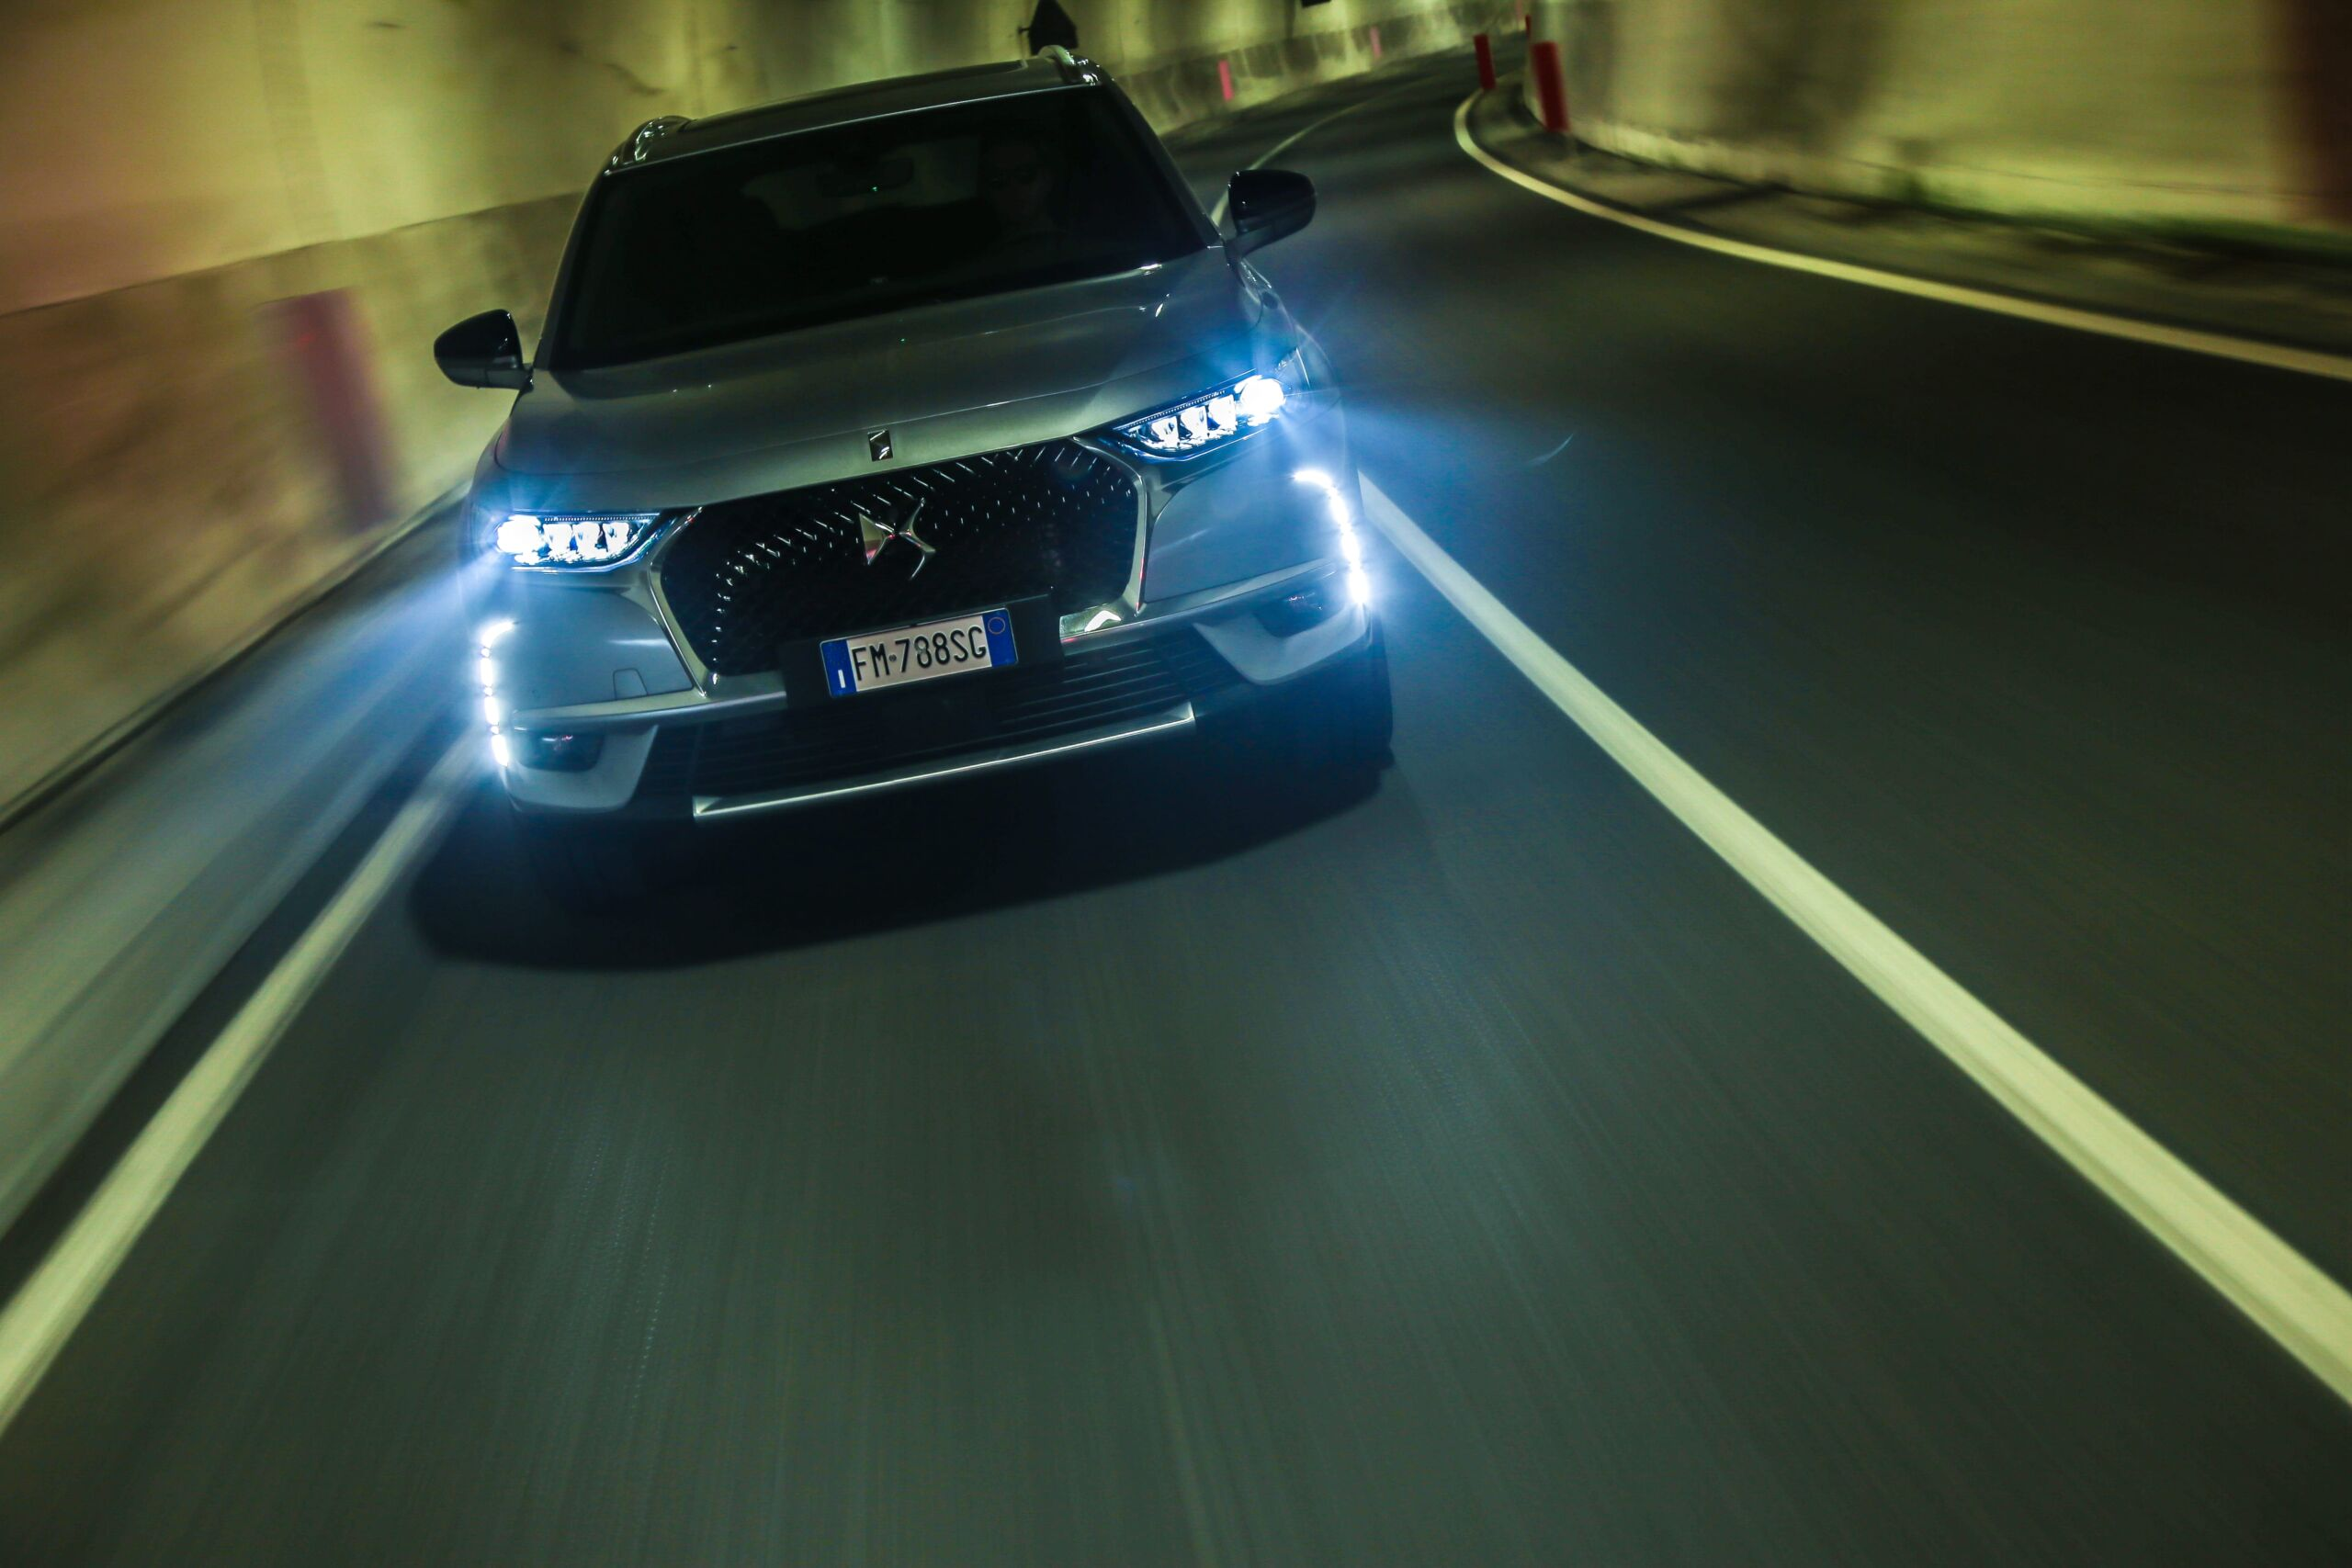 DS 7 Crossback sicurezza